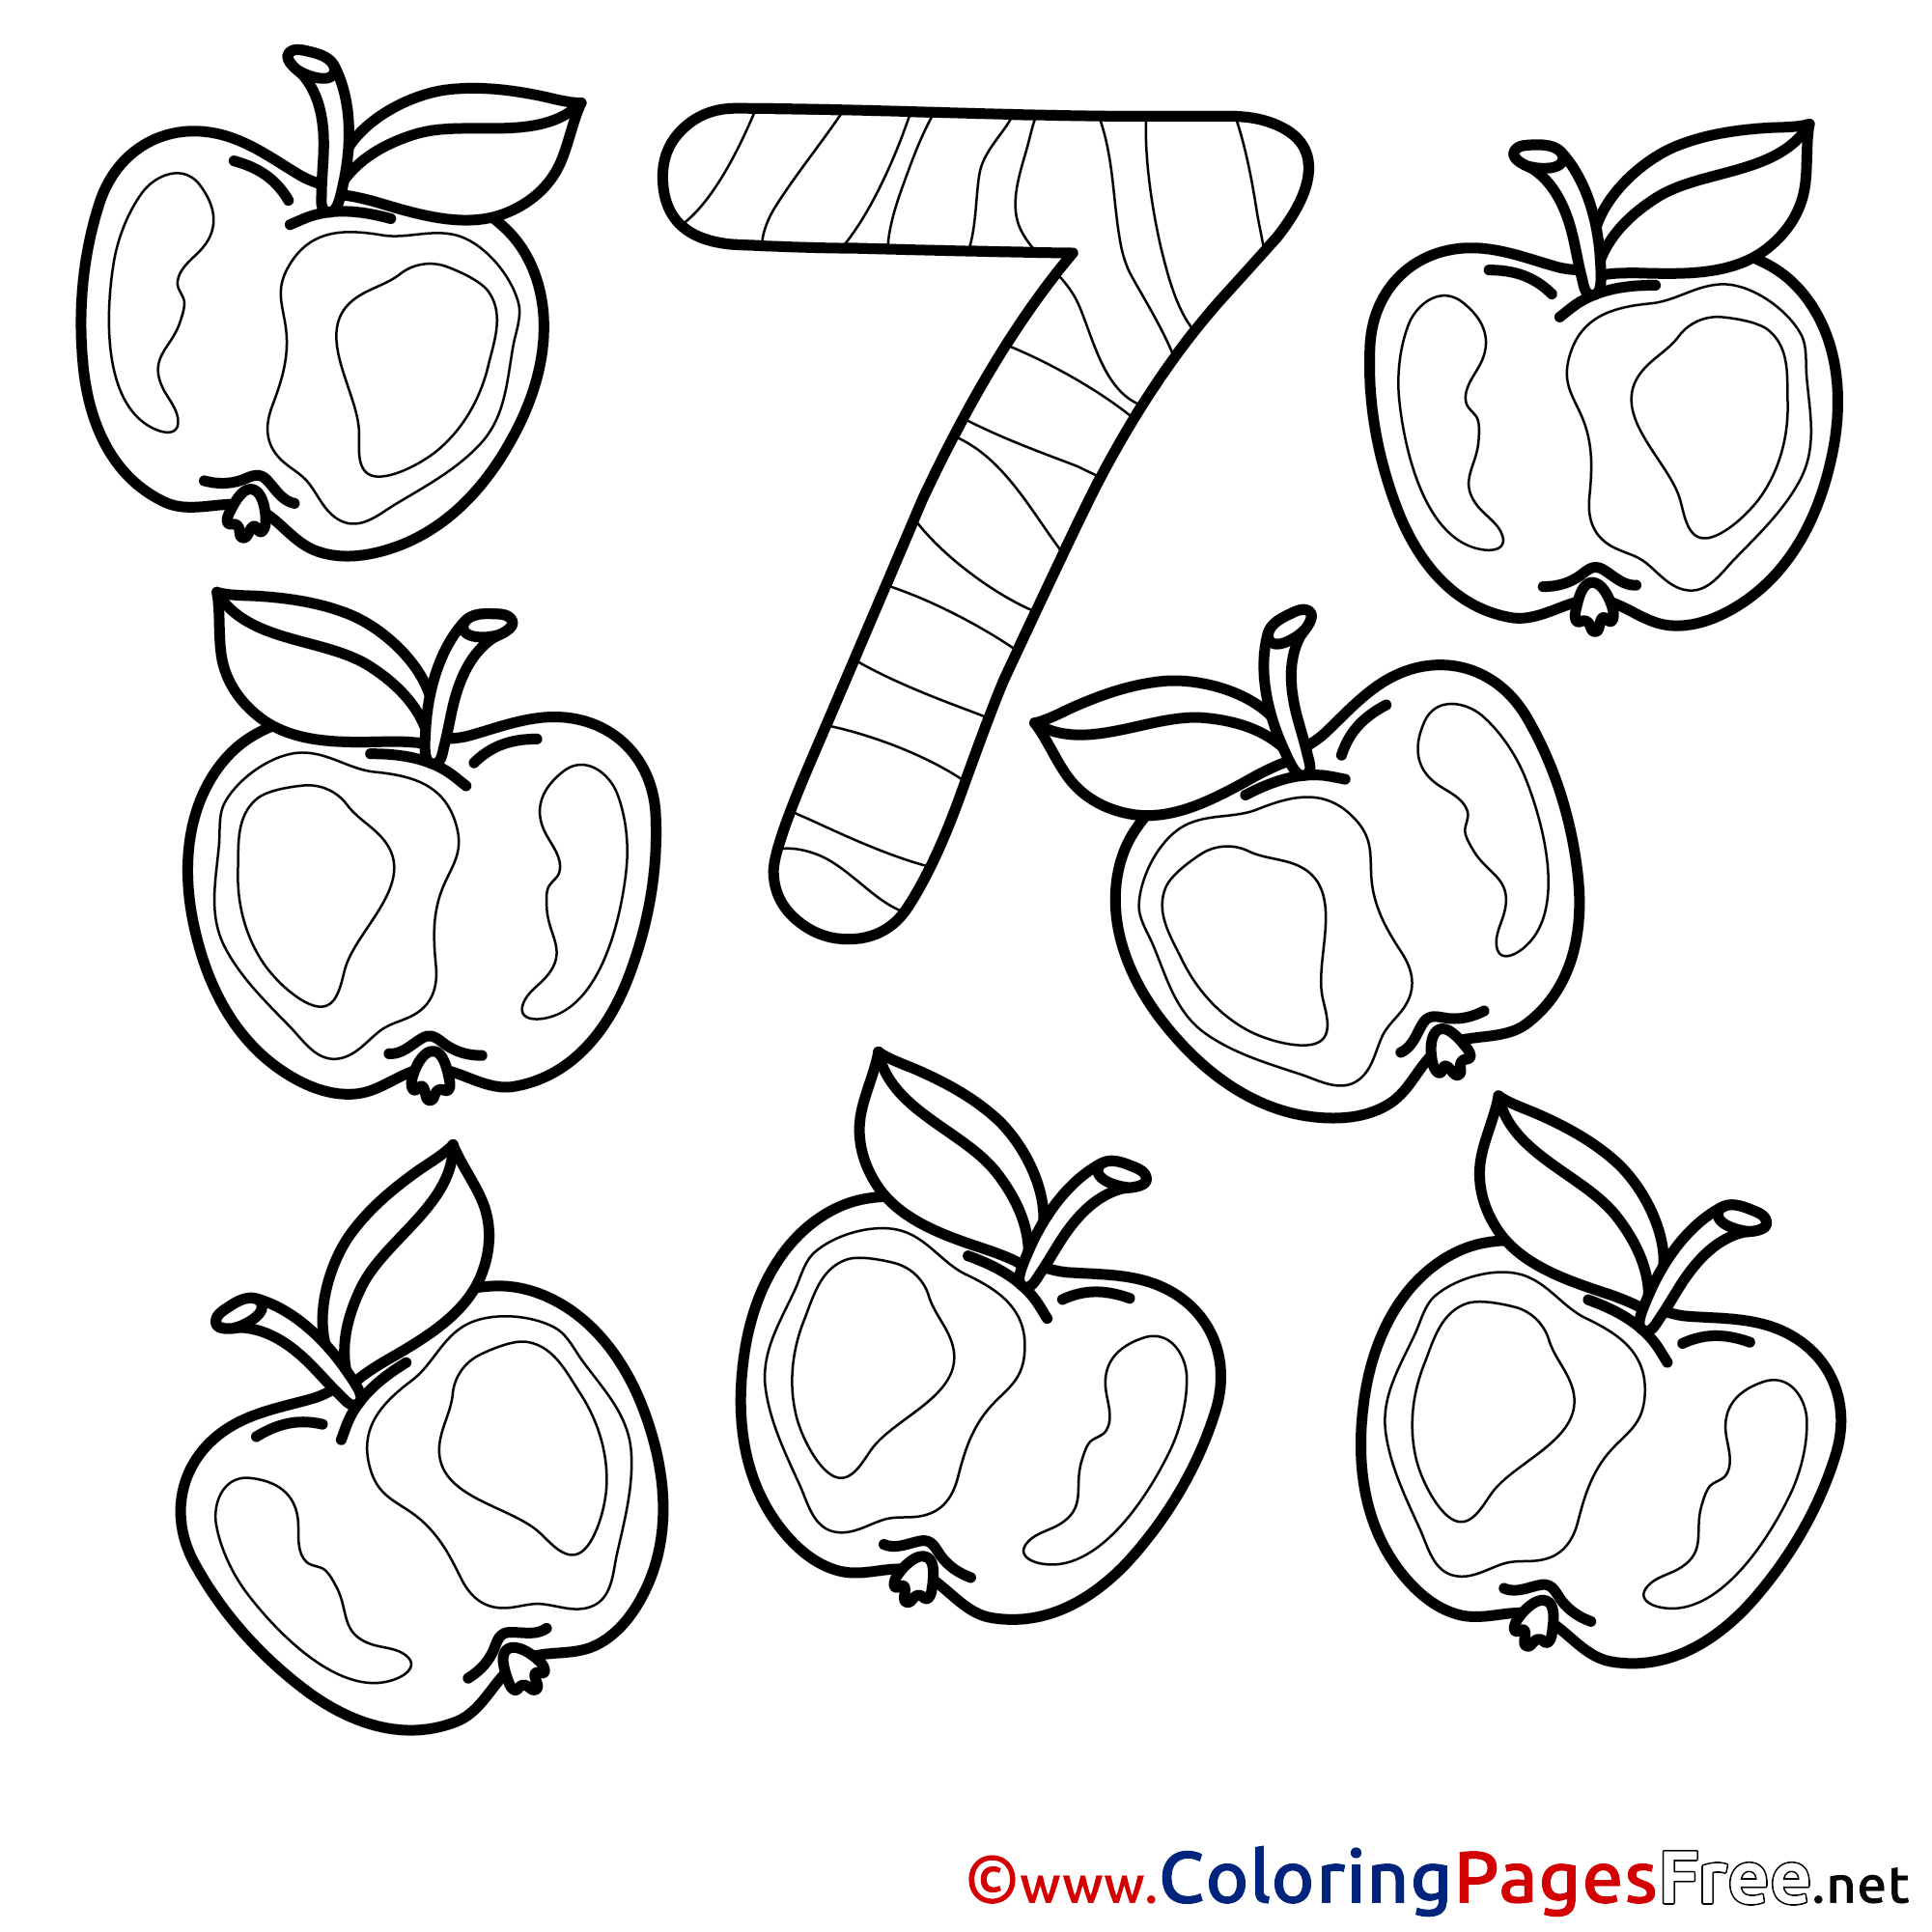 number 7 coloring page.  7 Apples download Numbers Coloring Pages